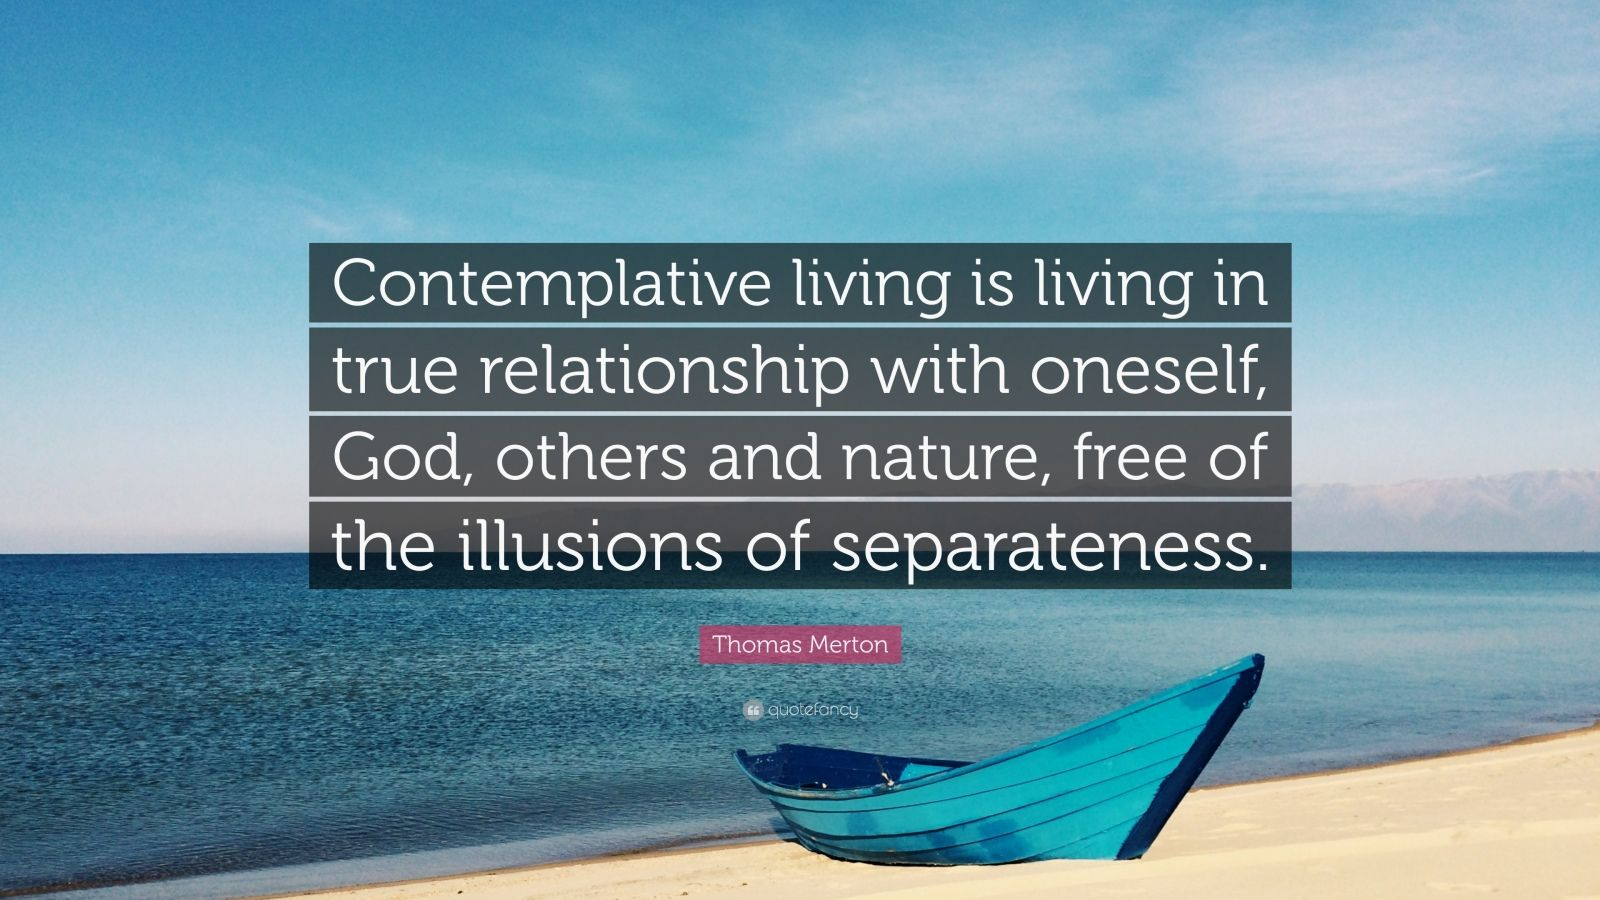 """Thomas Merton Quote: """"Contemplative living is living in true relationship with oneself, God, others and nature, free of the illusions of separateness."""""""